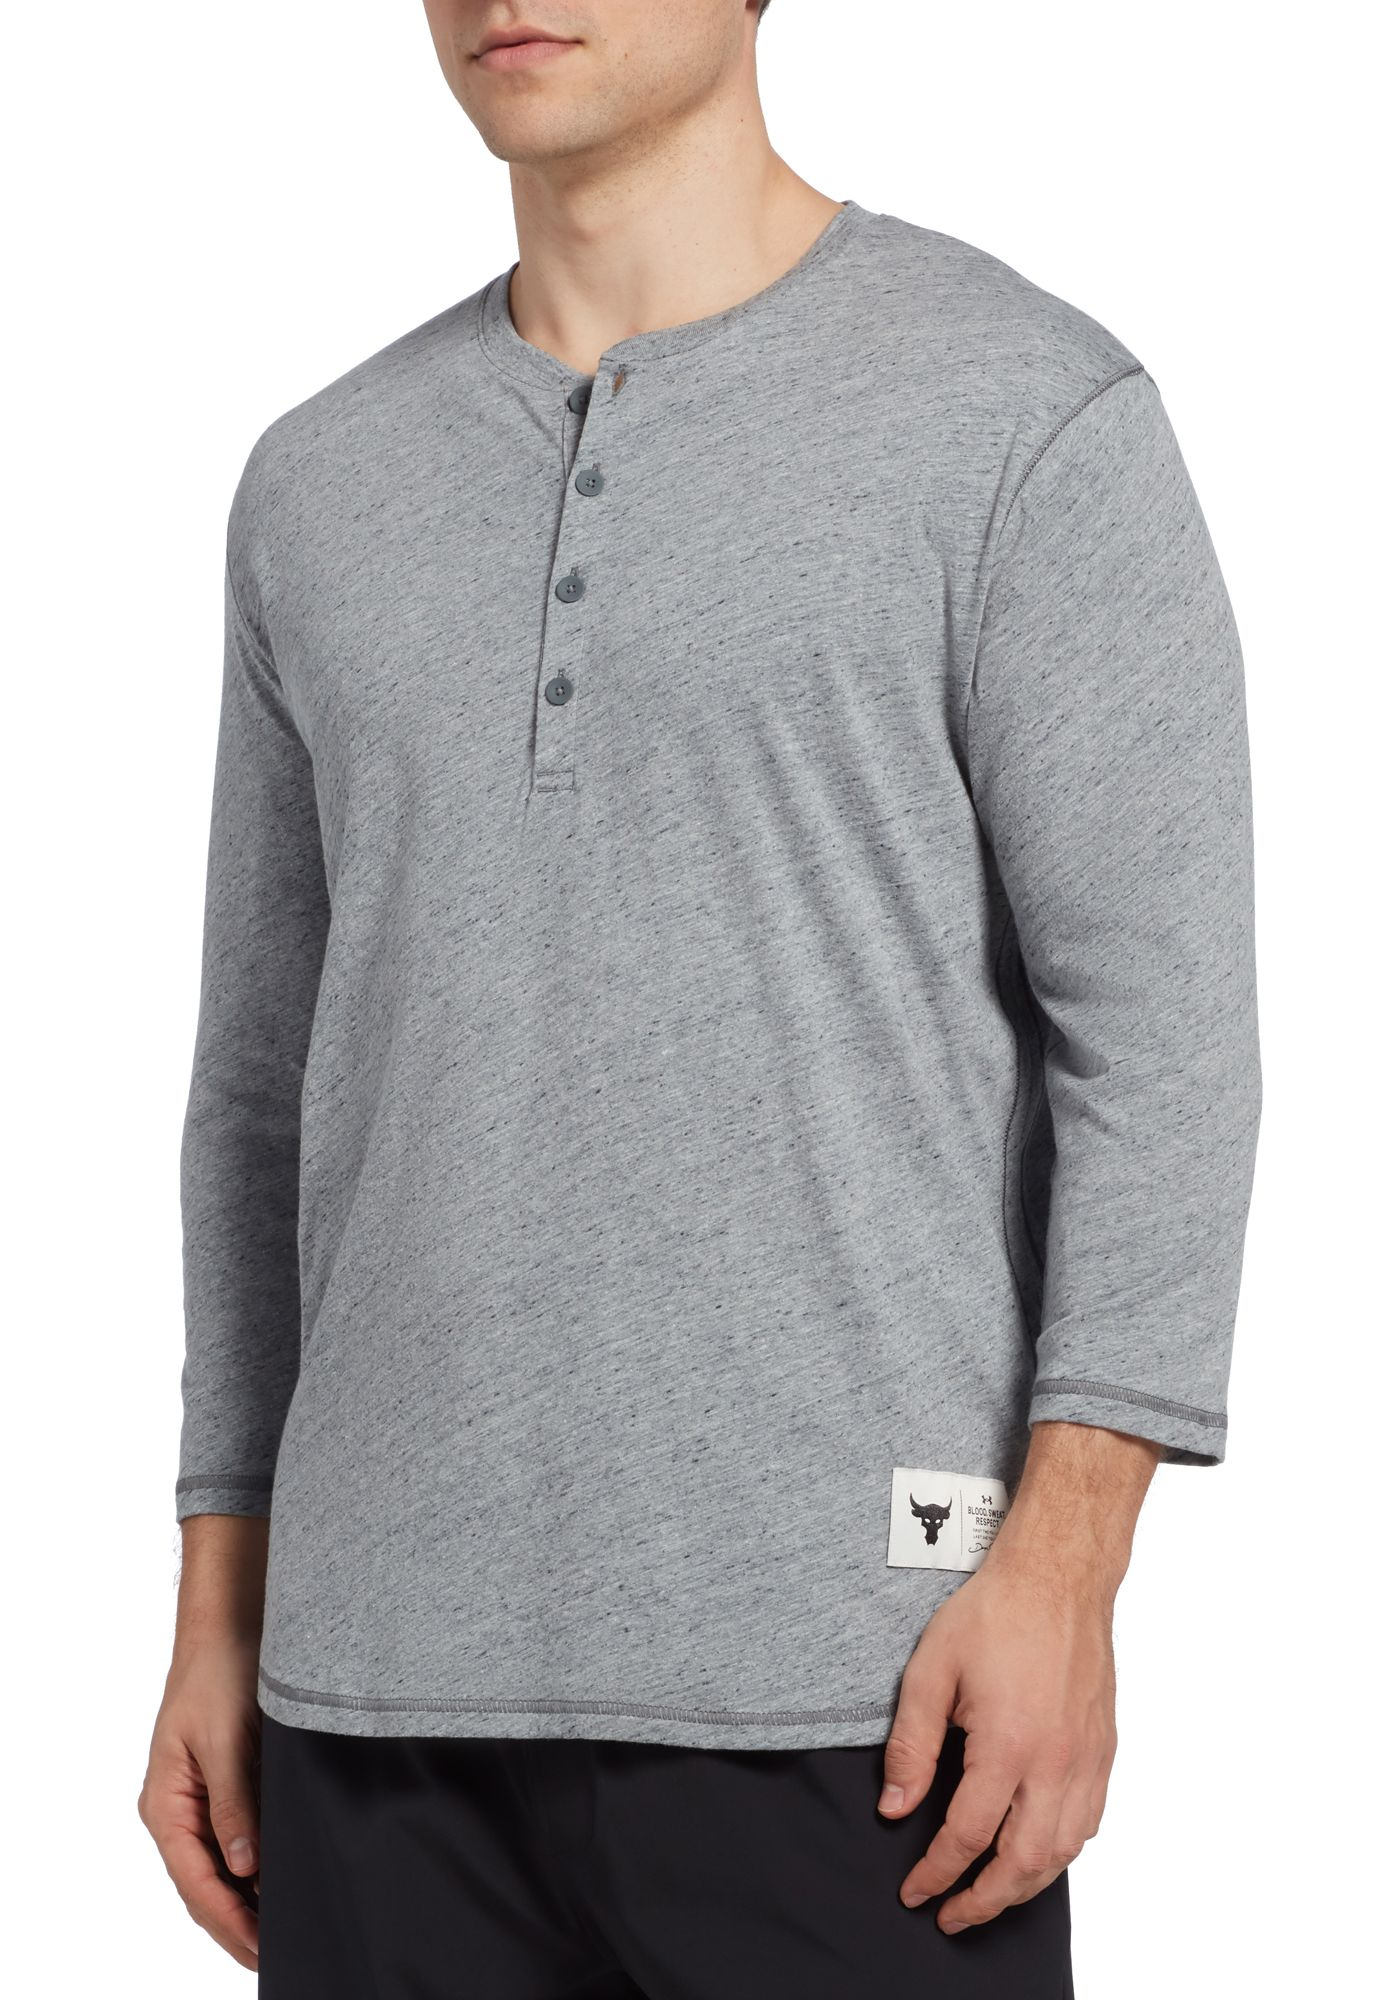 Under Armour Men's Project Rock Henley ¾ Sleeve Shirt